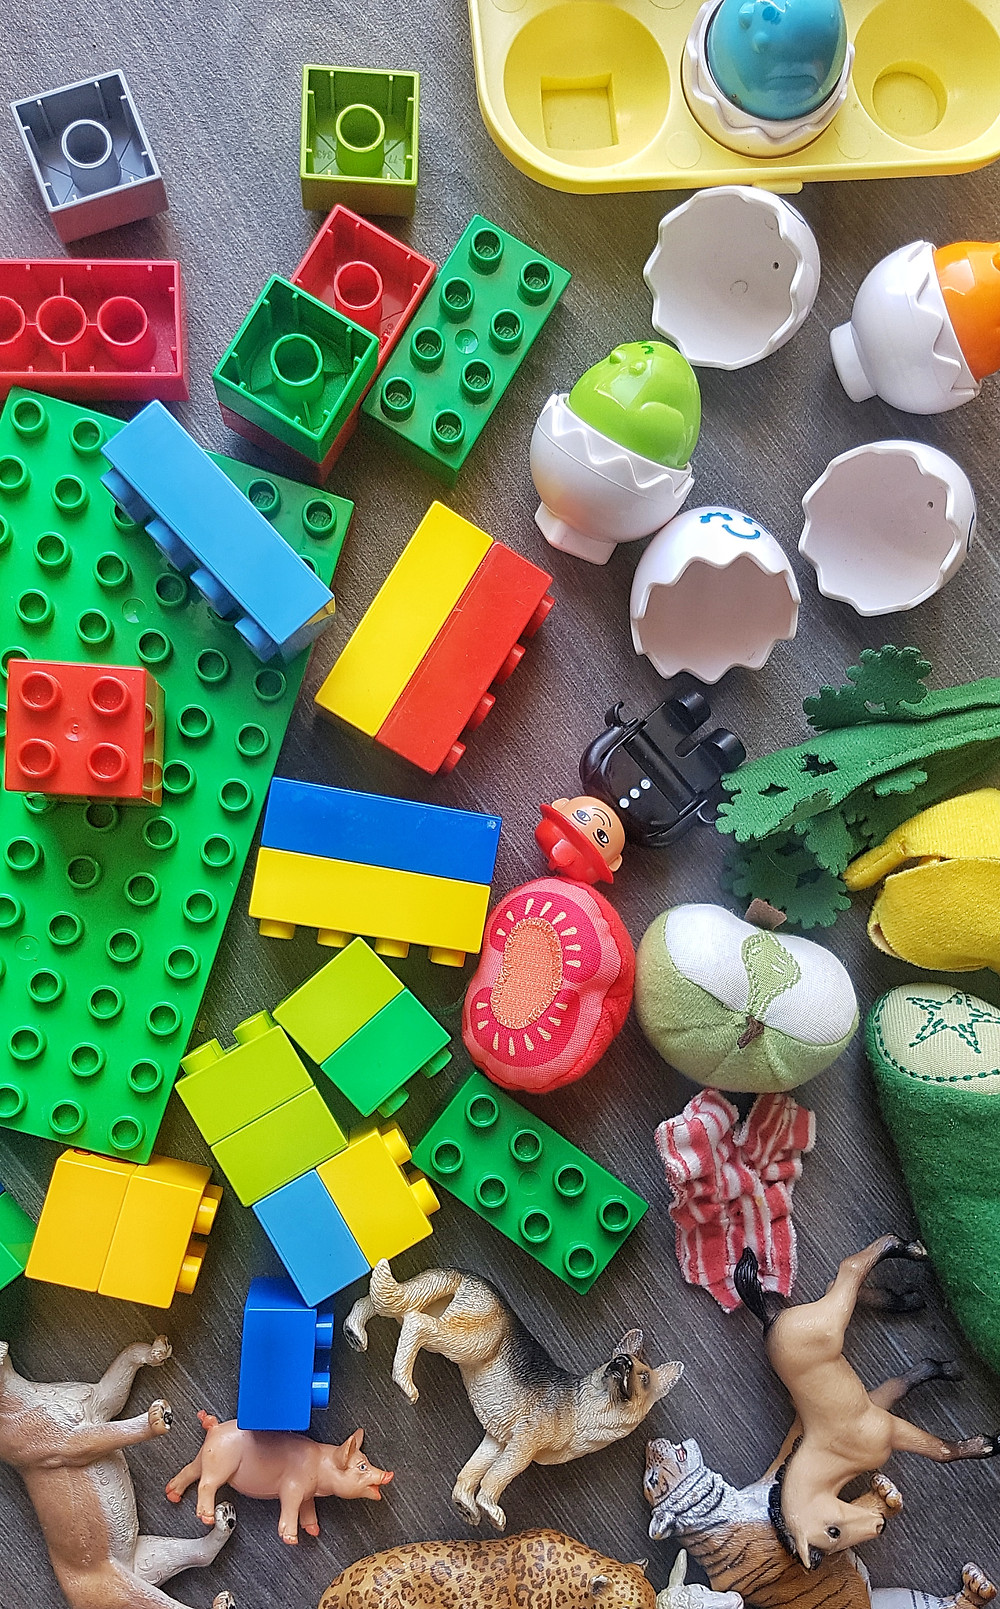 Colourful plastic toys, duplo, animals, tipped over the floor